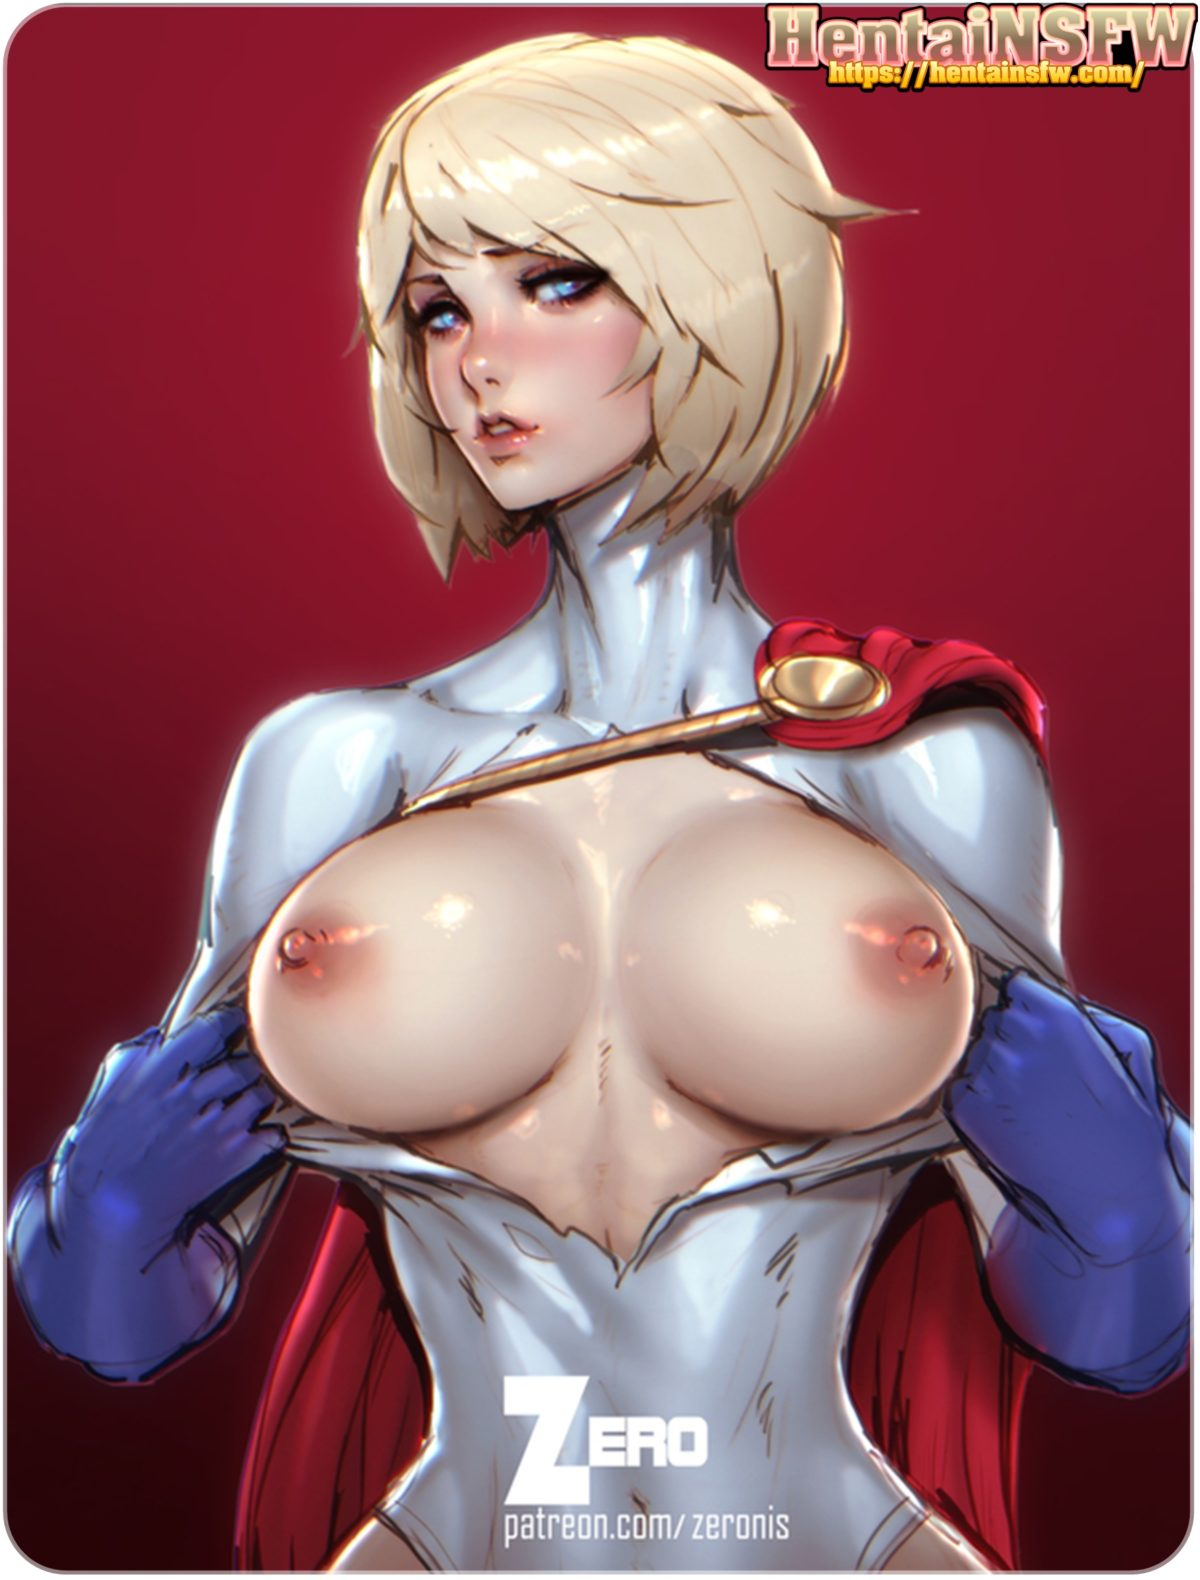 Full color uncensored ecchi oppai hentai art of DC comics busty Power Girl with her big tits out.